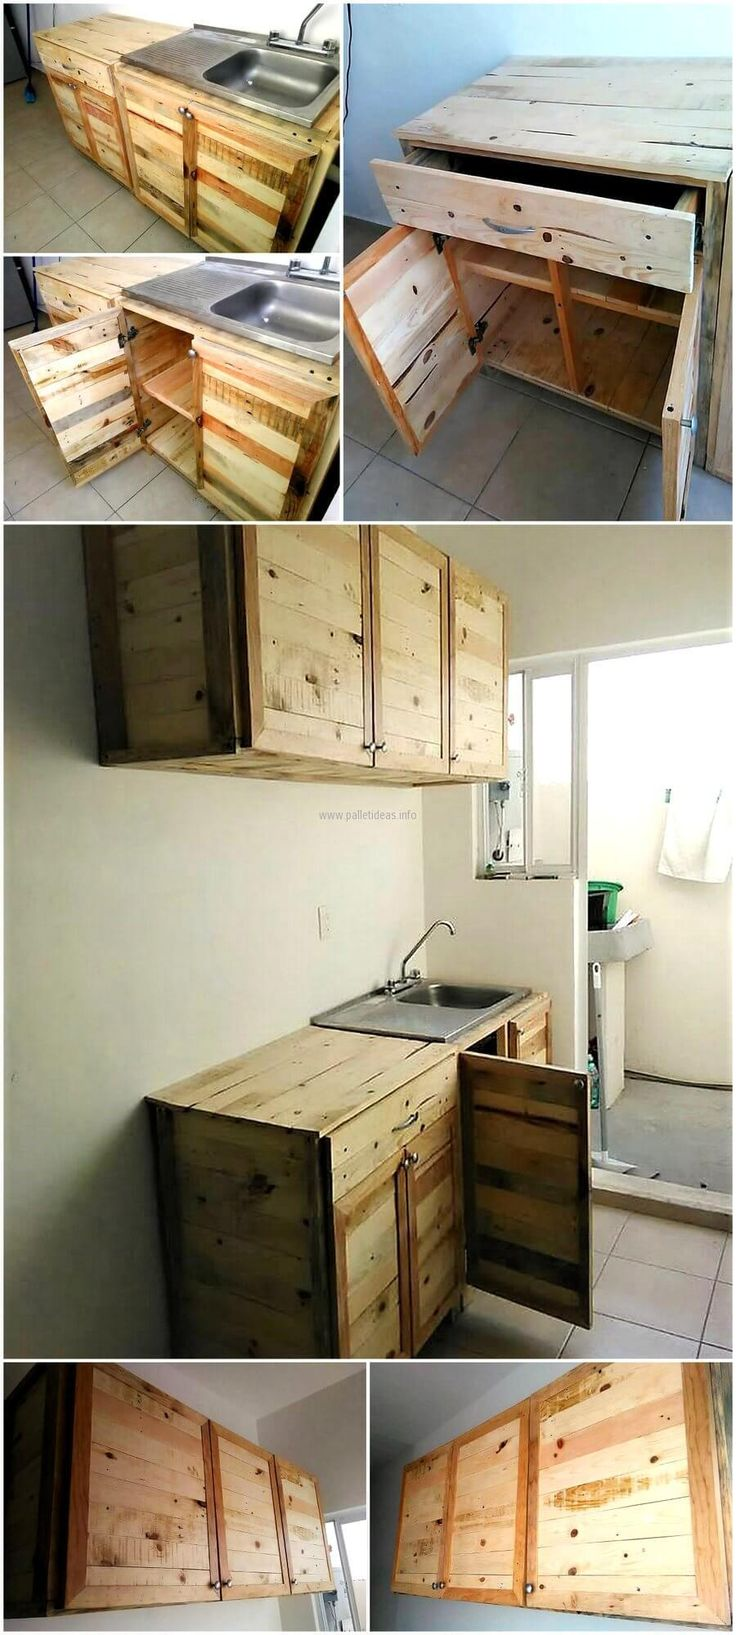 Reused Kitchen Cabinets 17 Best Ideas About Recycled Kitchen On Pinterest Recycle Com